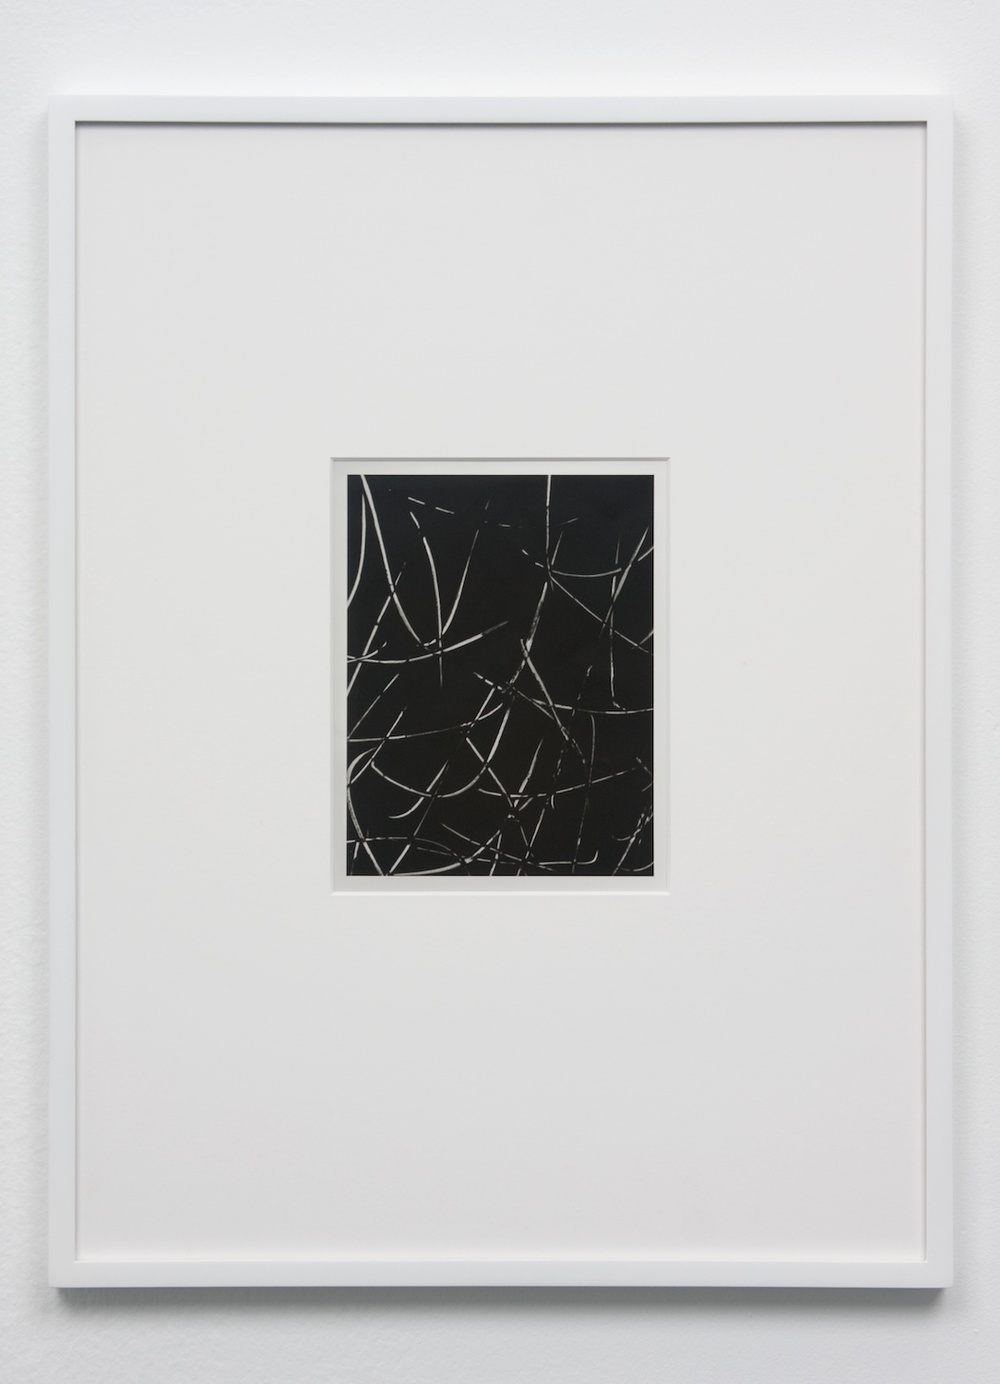 Anthony Pearson  Untitled (Solarization)  2010 Framed solarized silver gelatin photograph 17 ½h x 13 ¼w in AP241